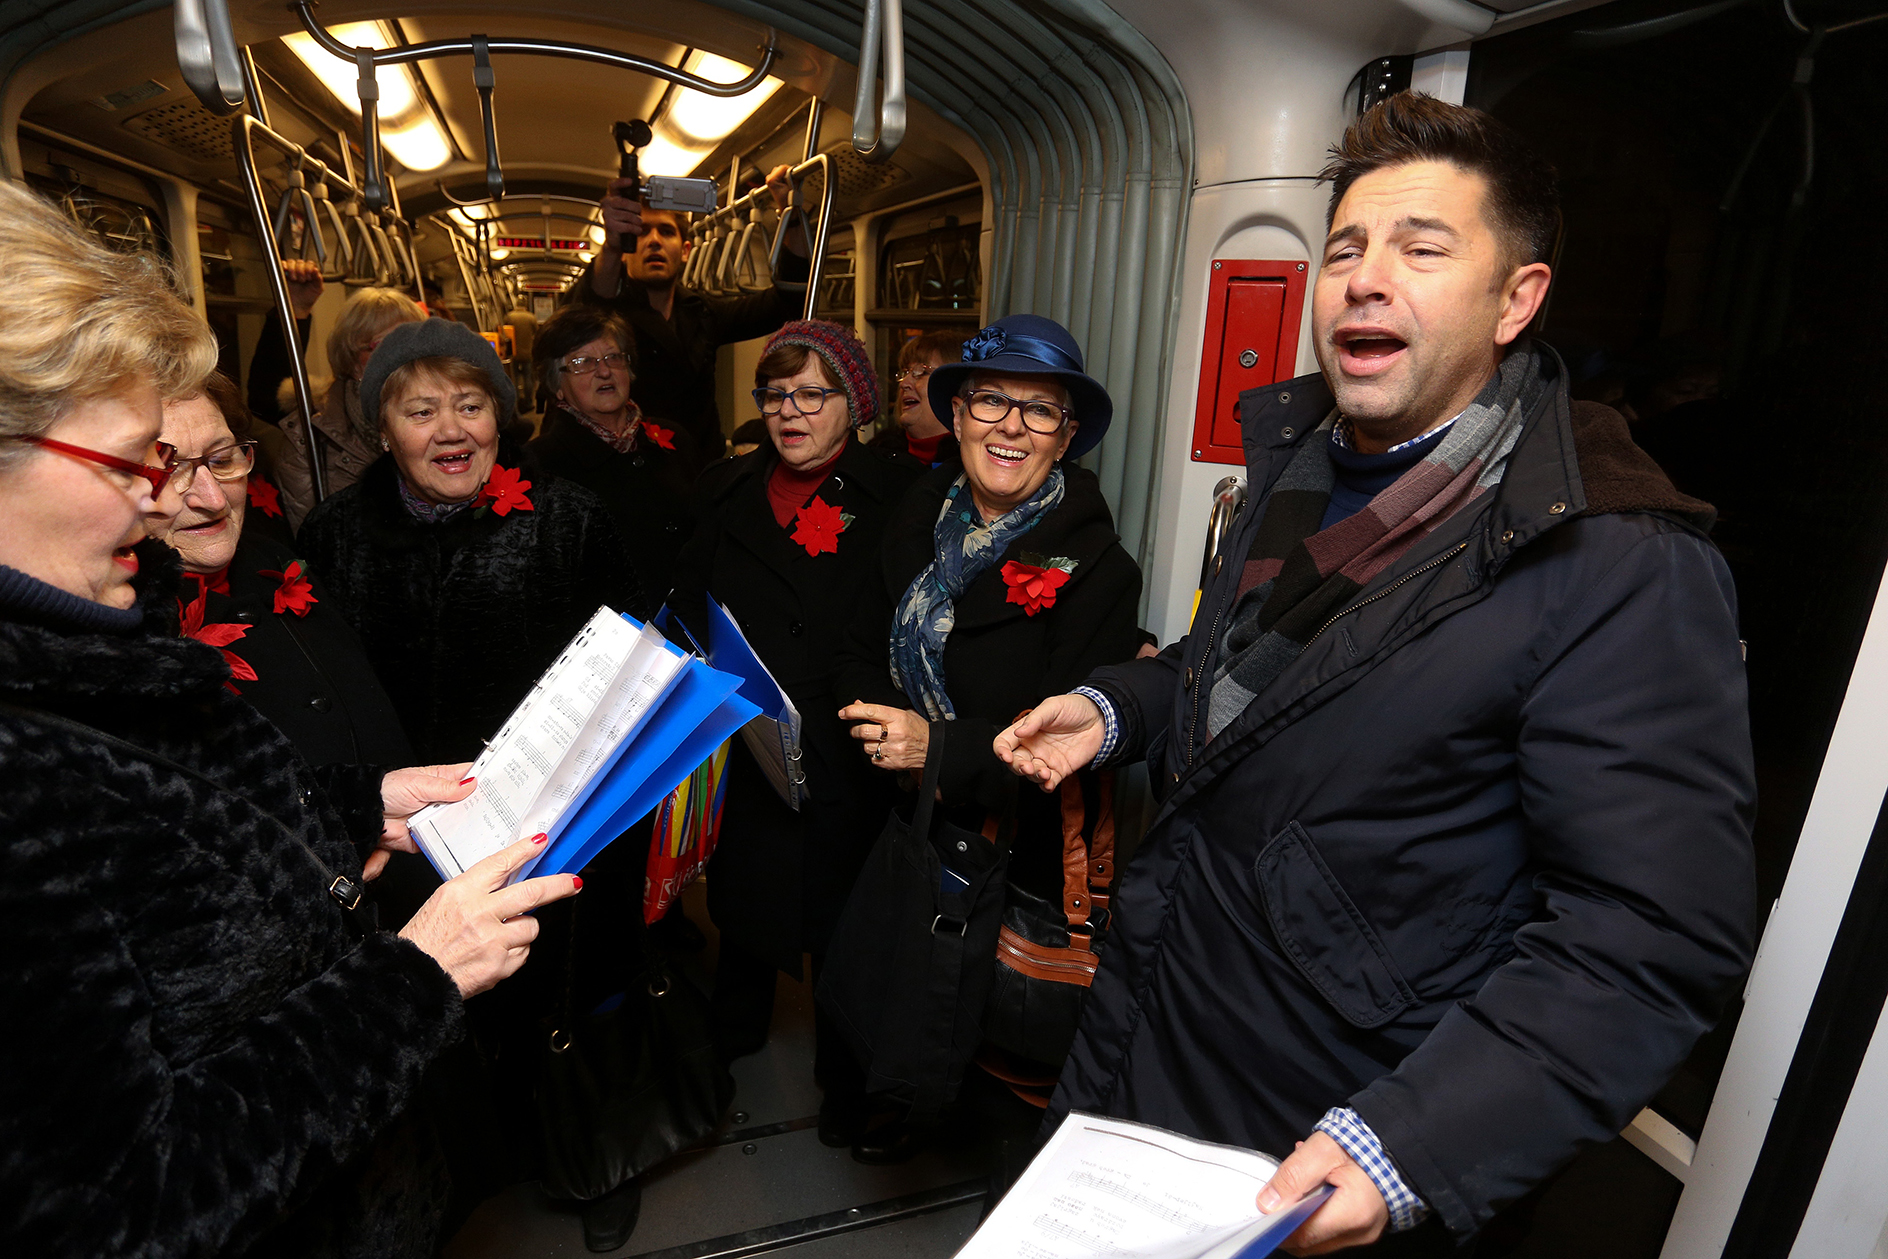 Pevec Singing Tram Brings the Holiday Chear